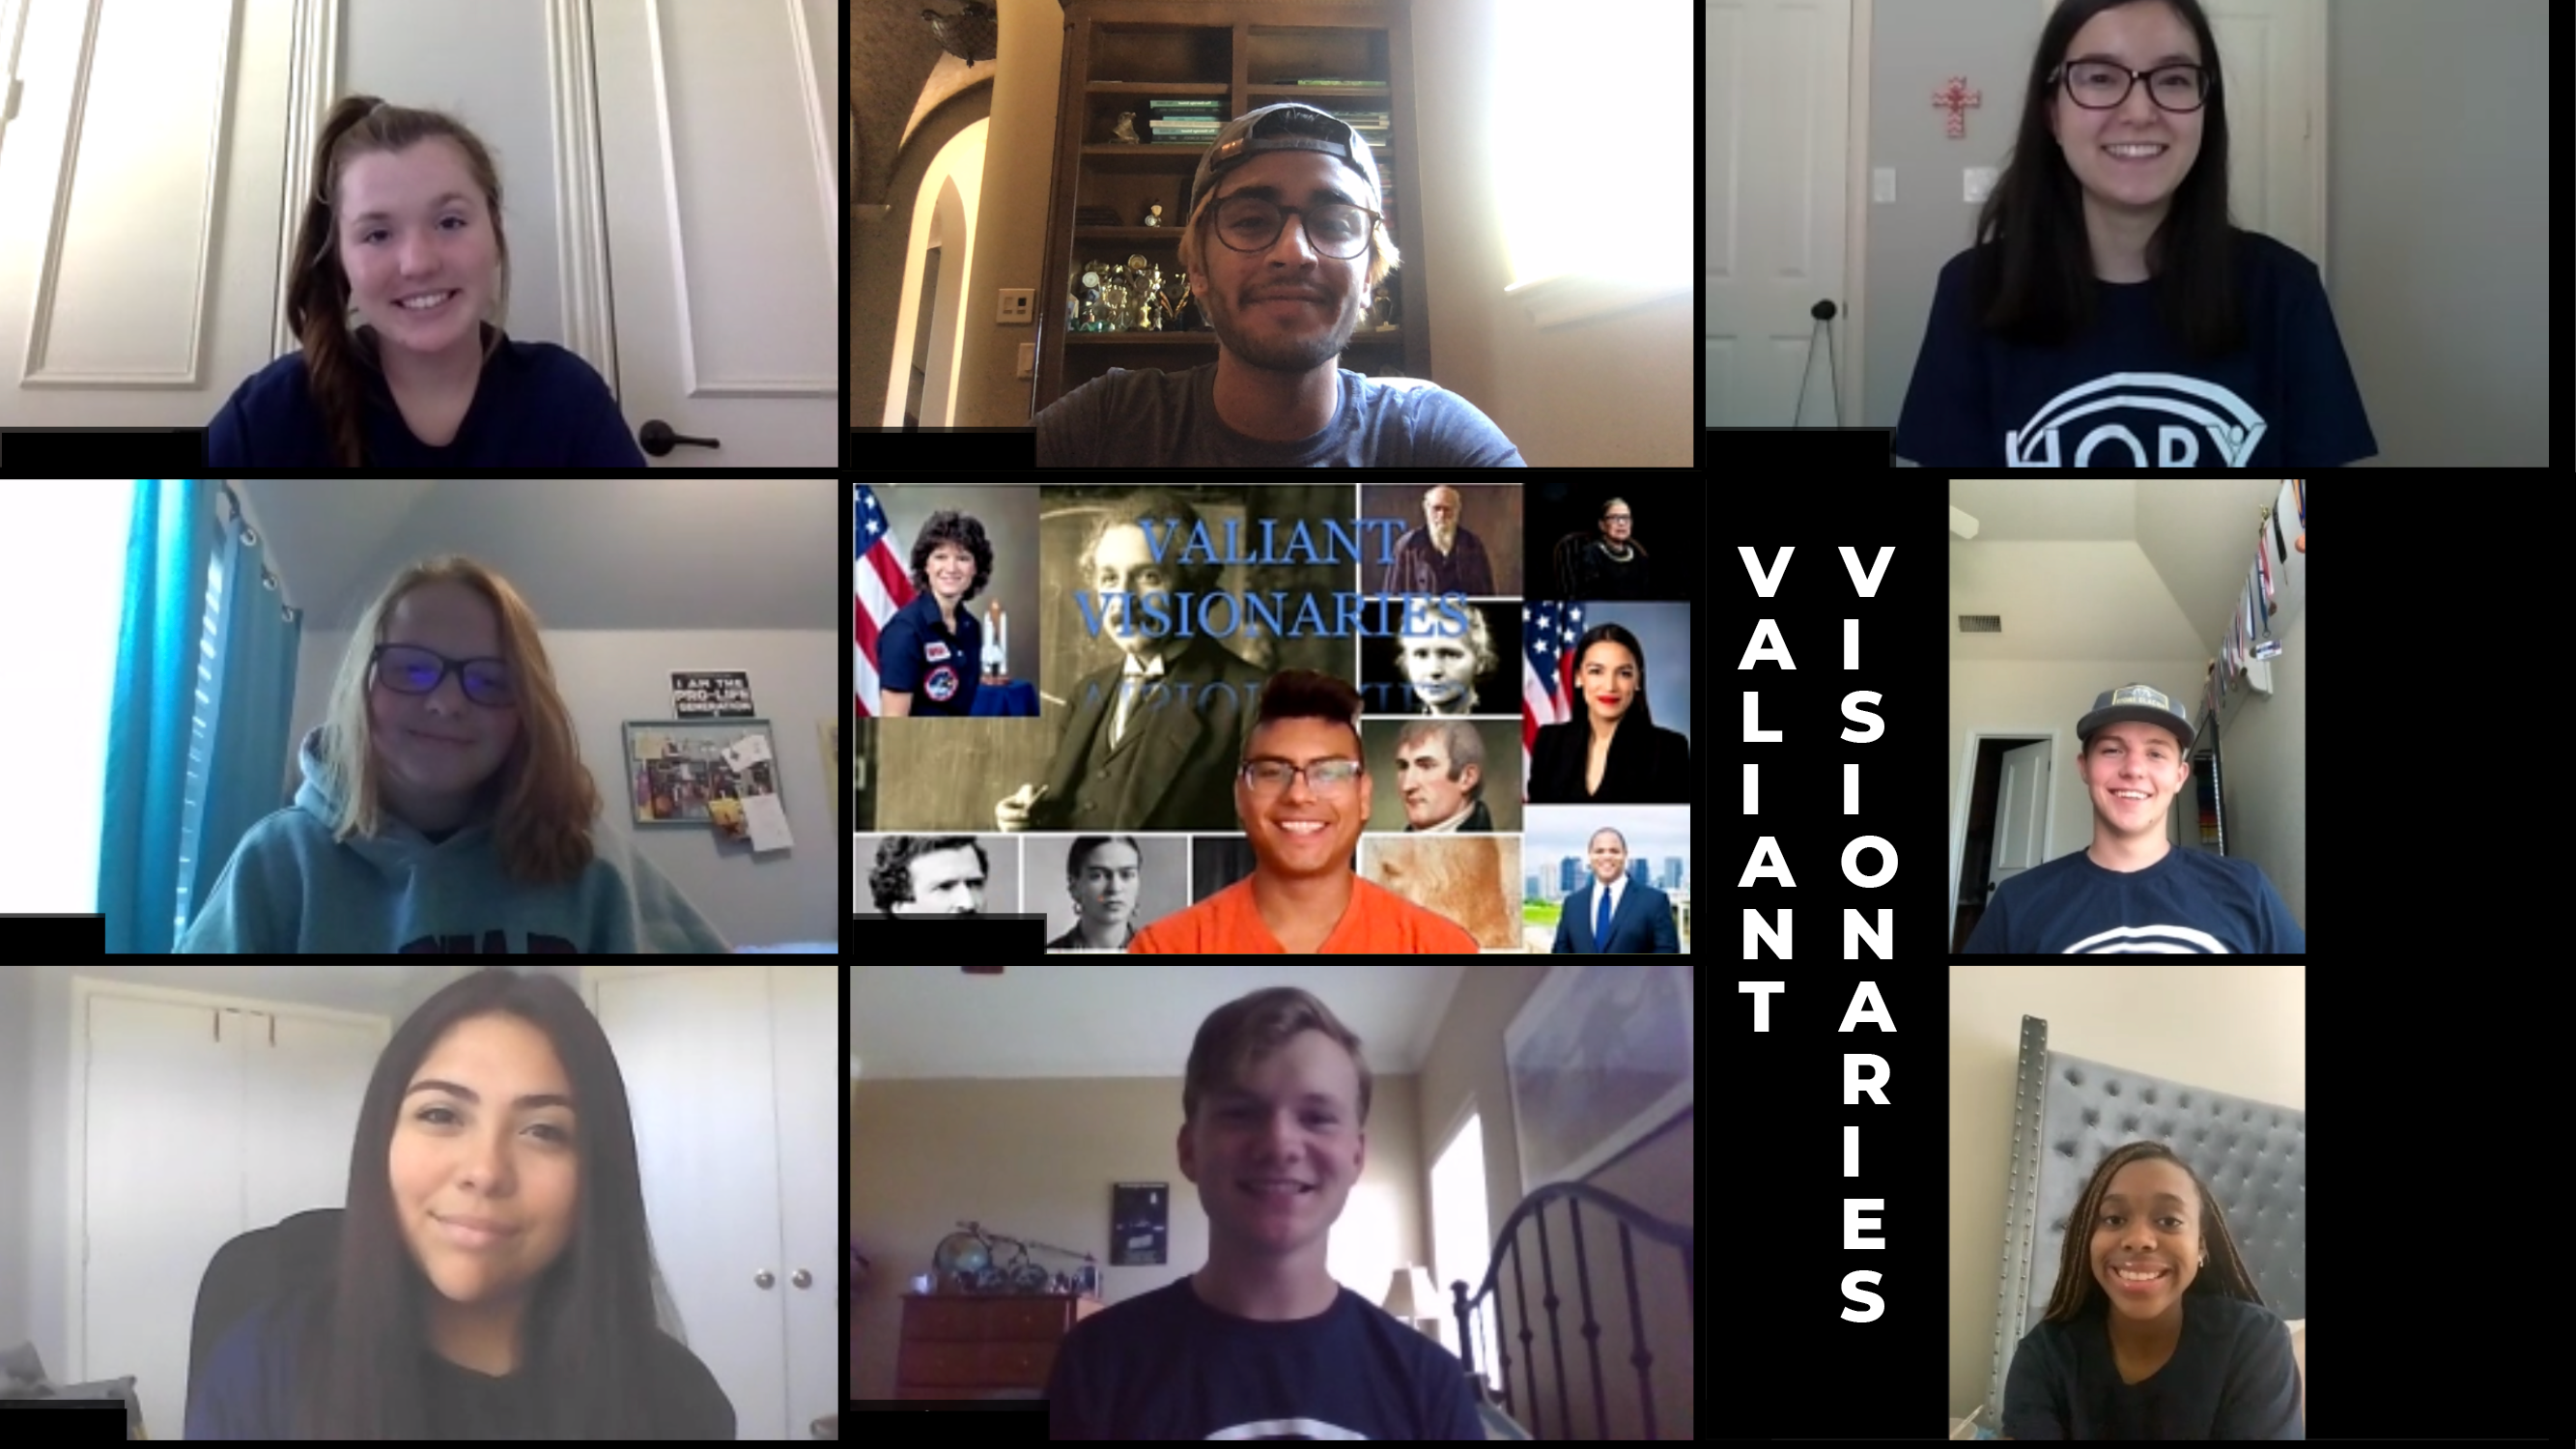 Valiant Visionaries Group